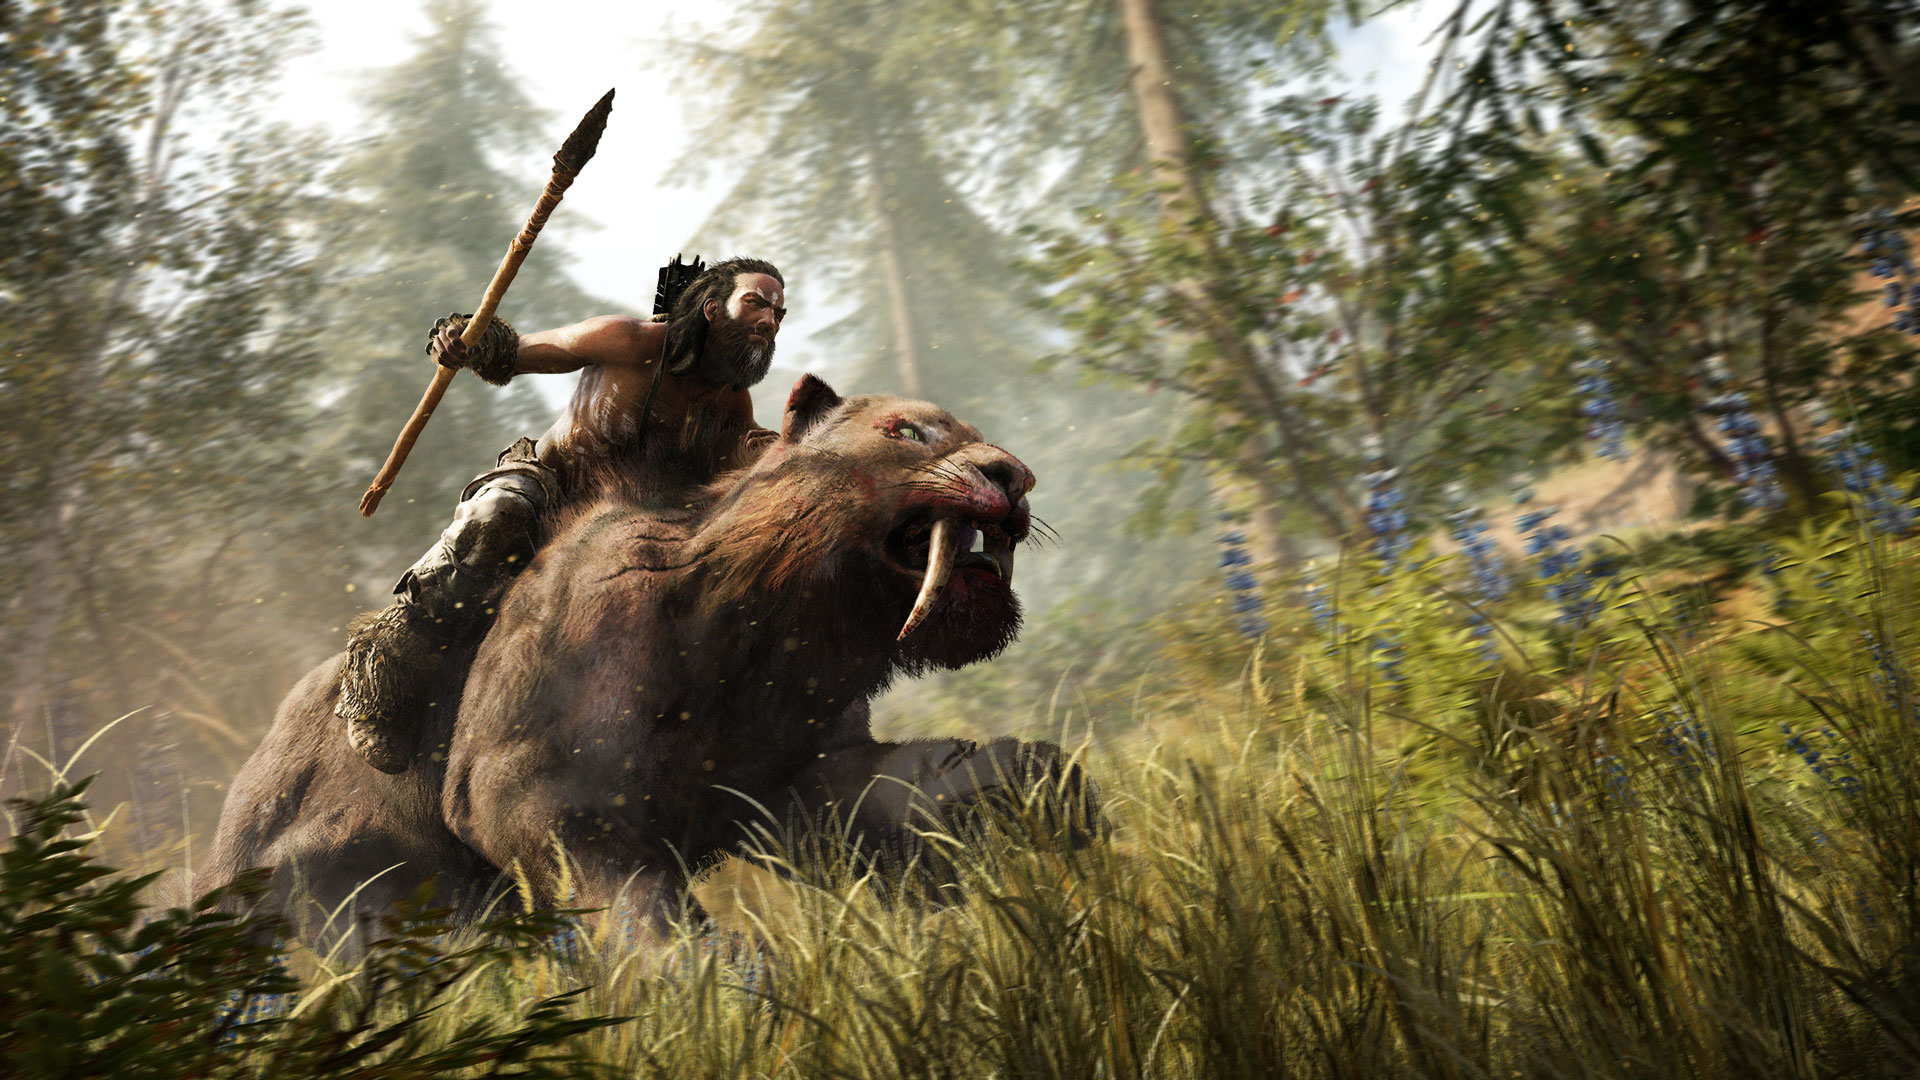 ncsa-far-cry-primal-news-dec-vids_231573